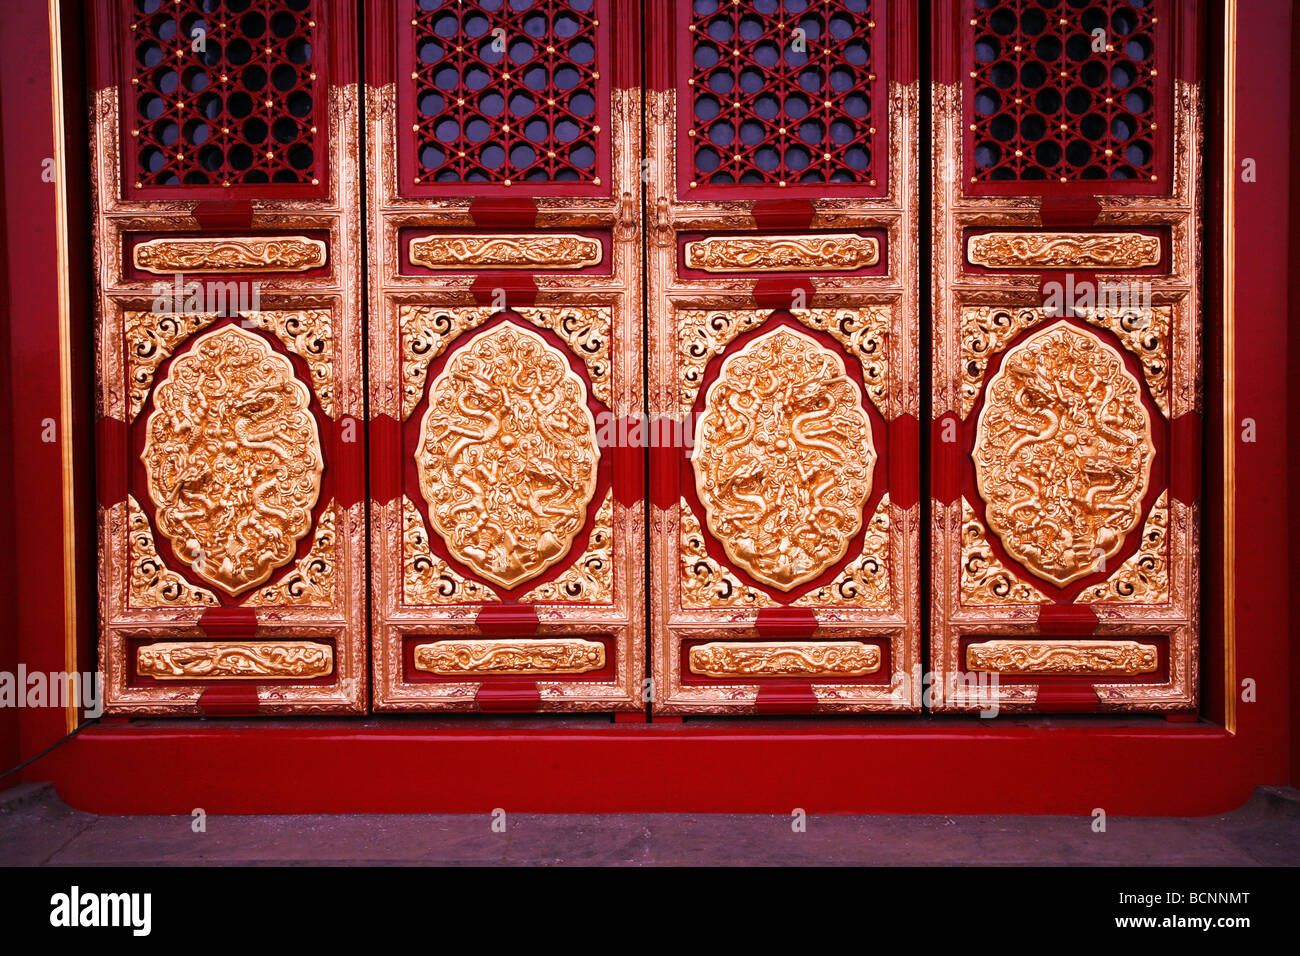 Elaborate door panels covered with gold leaf in dragon and cloud pattern Hall of Supreme  sc 1 st  Alamy & Gold Door Supreme Court Stock Photos u0026 Gold Door Supreme Court Stock ...